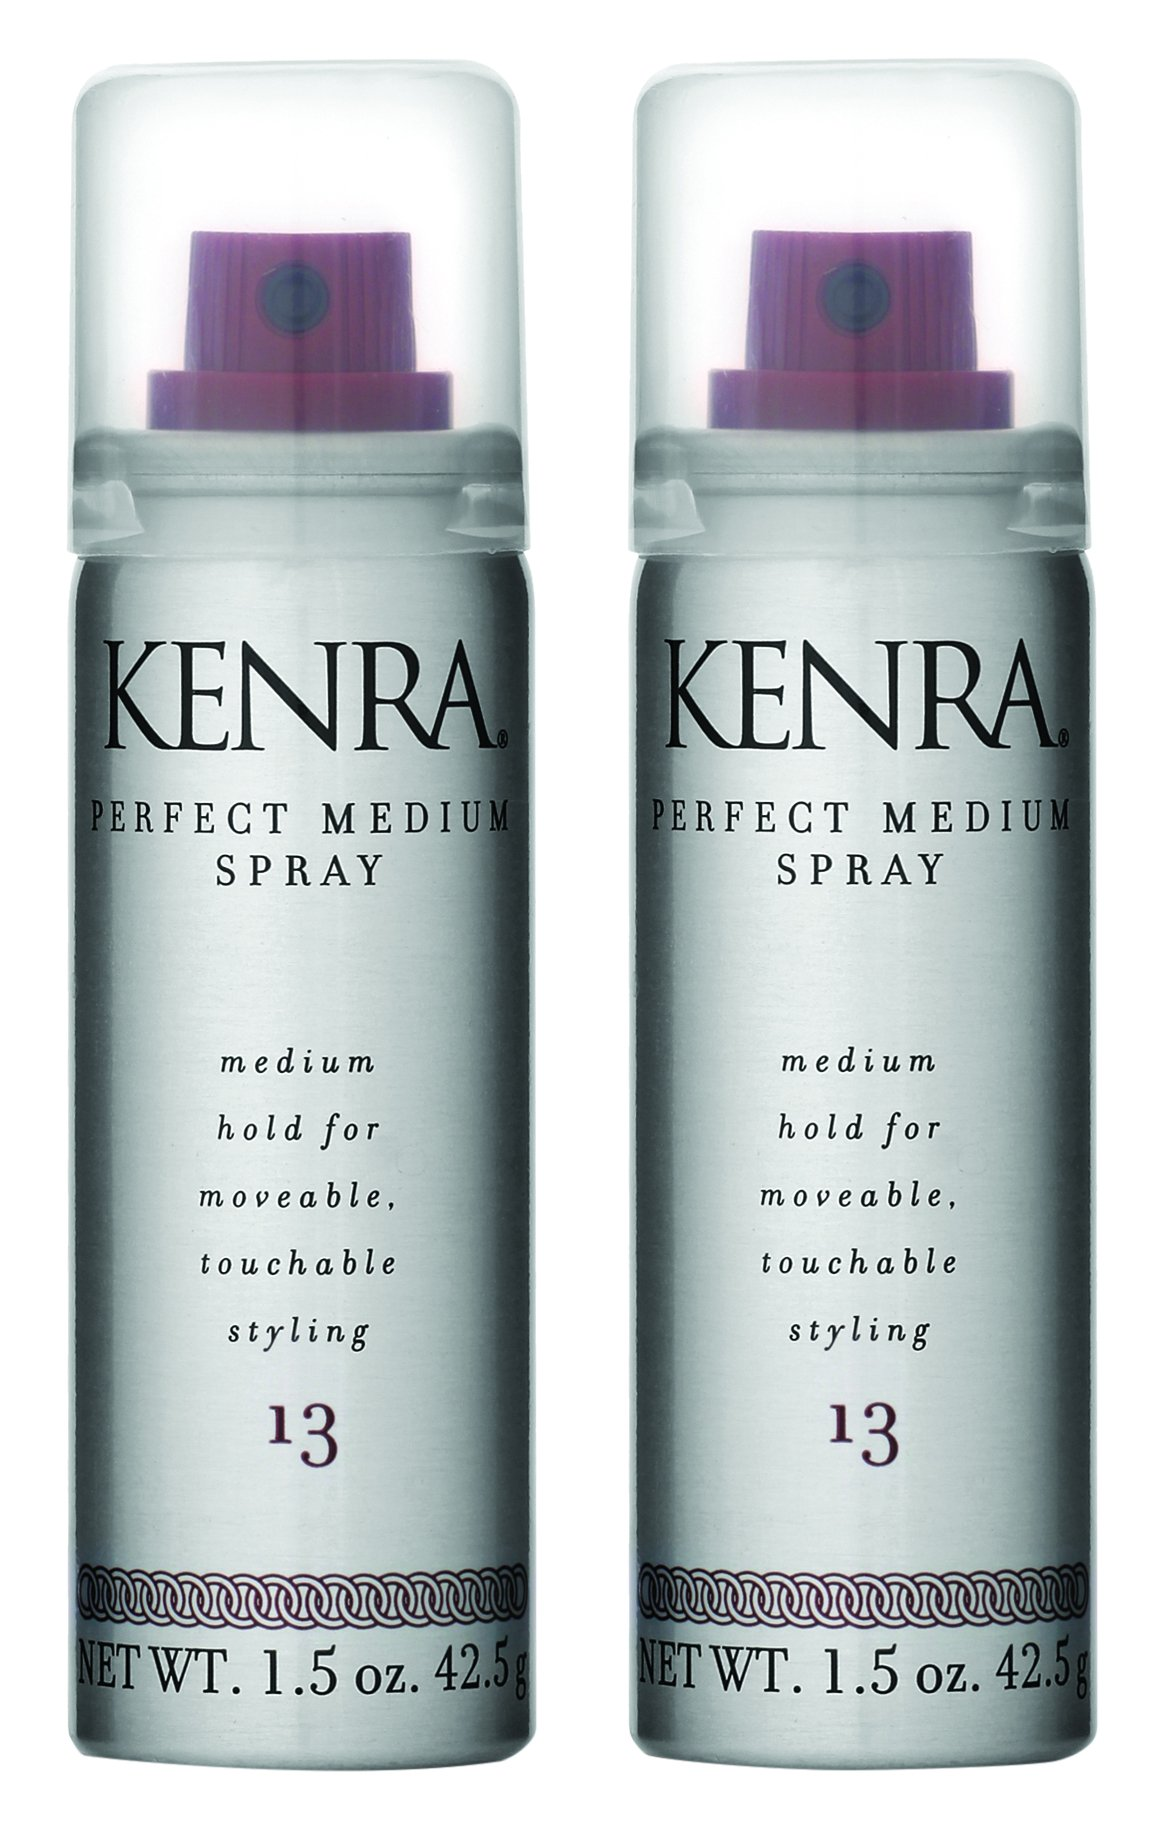 Kenra Perfect Medium Spray #13, 55% VOC, 1.5-Ounce (2